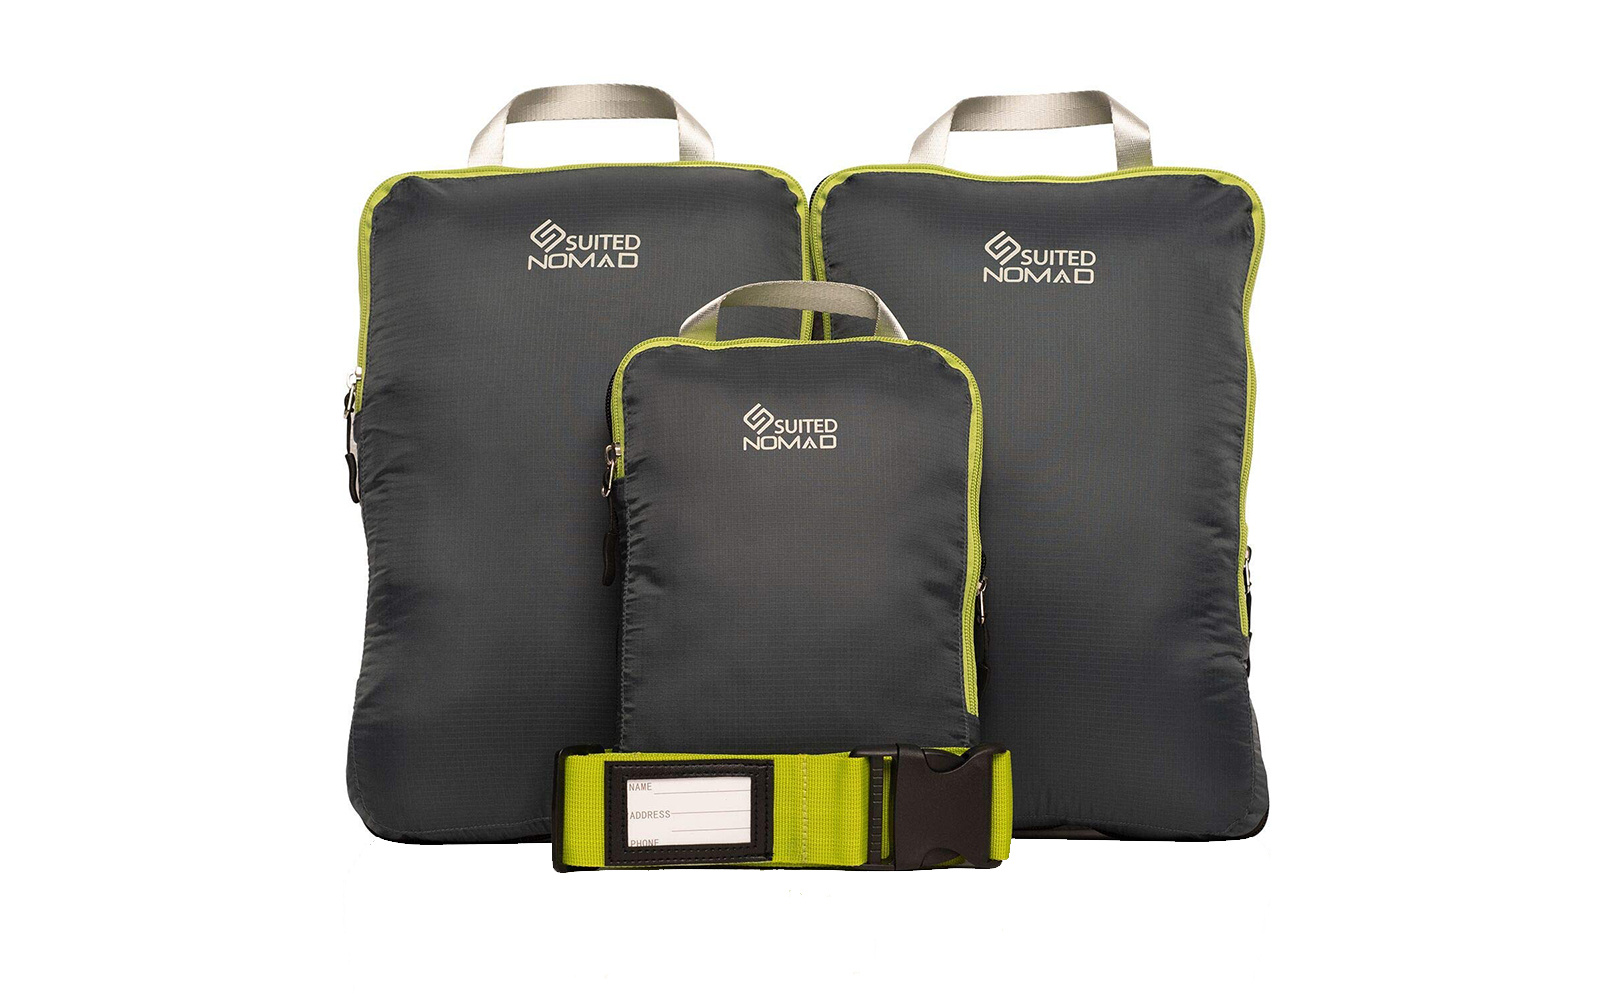 Suited Nomad Compression Packing Cubes